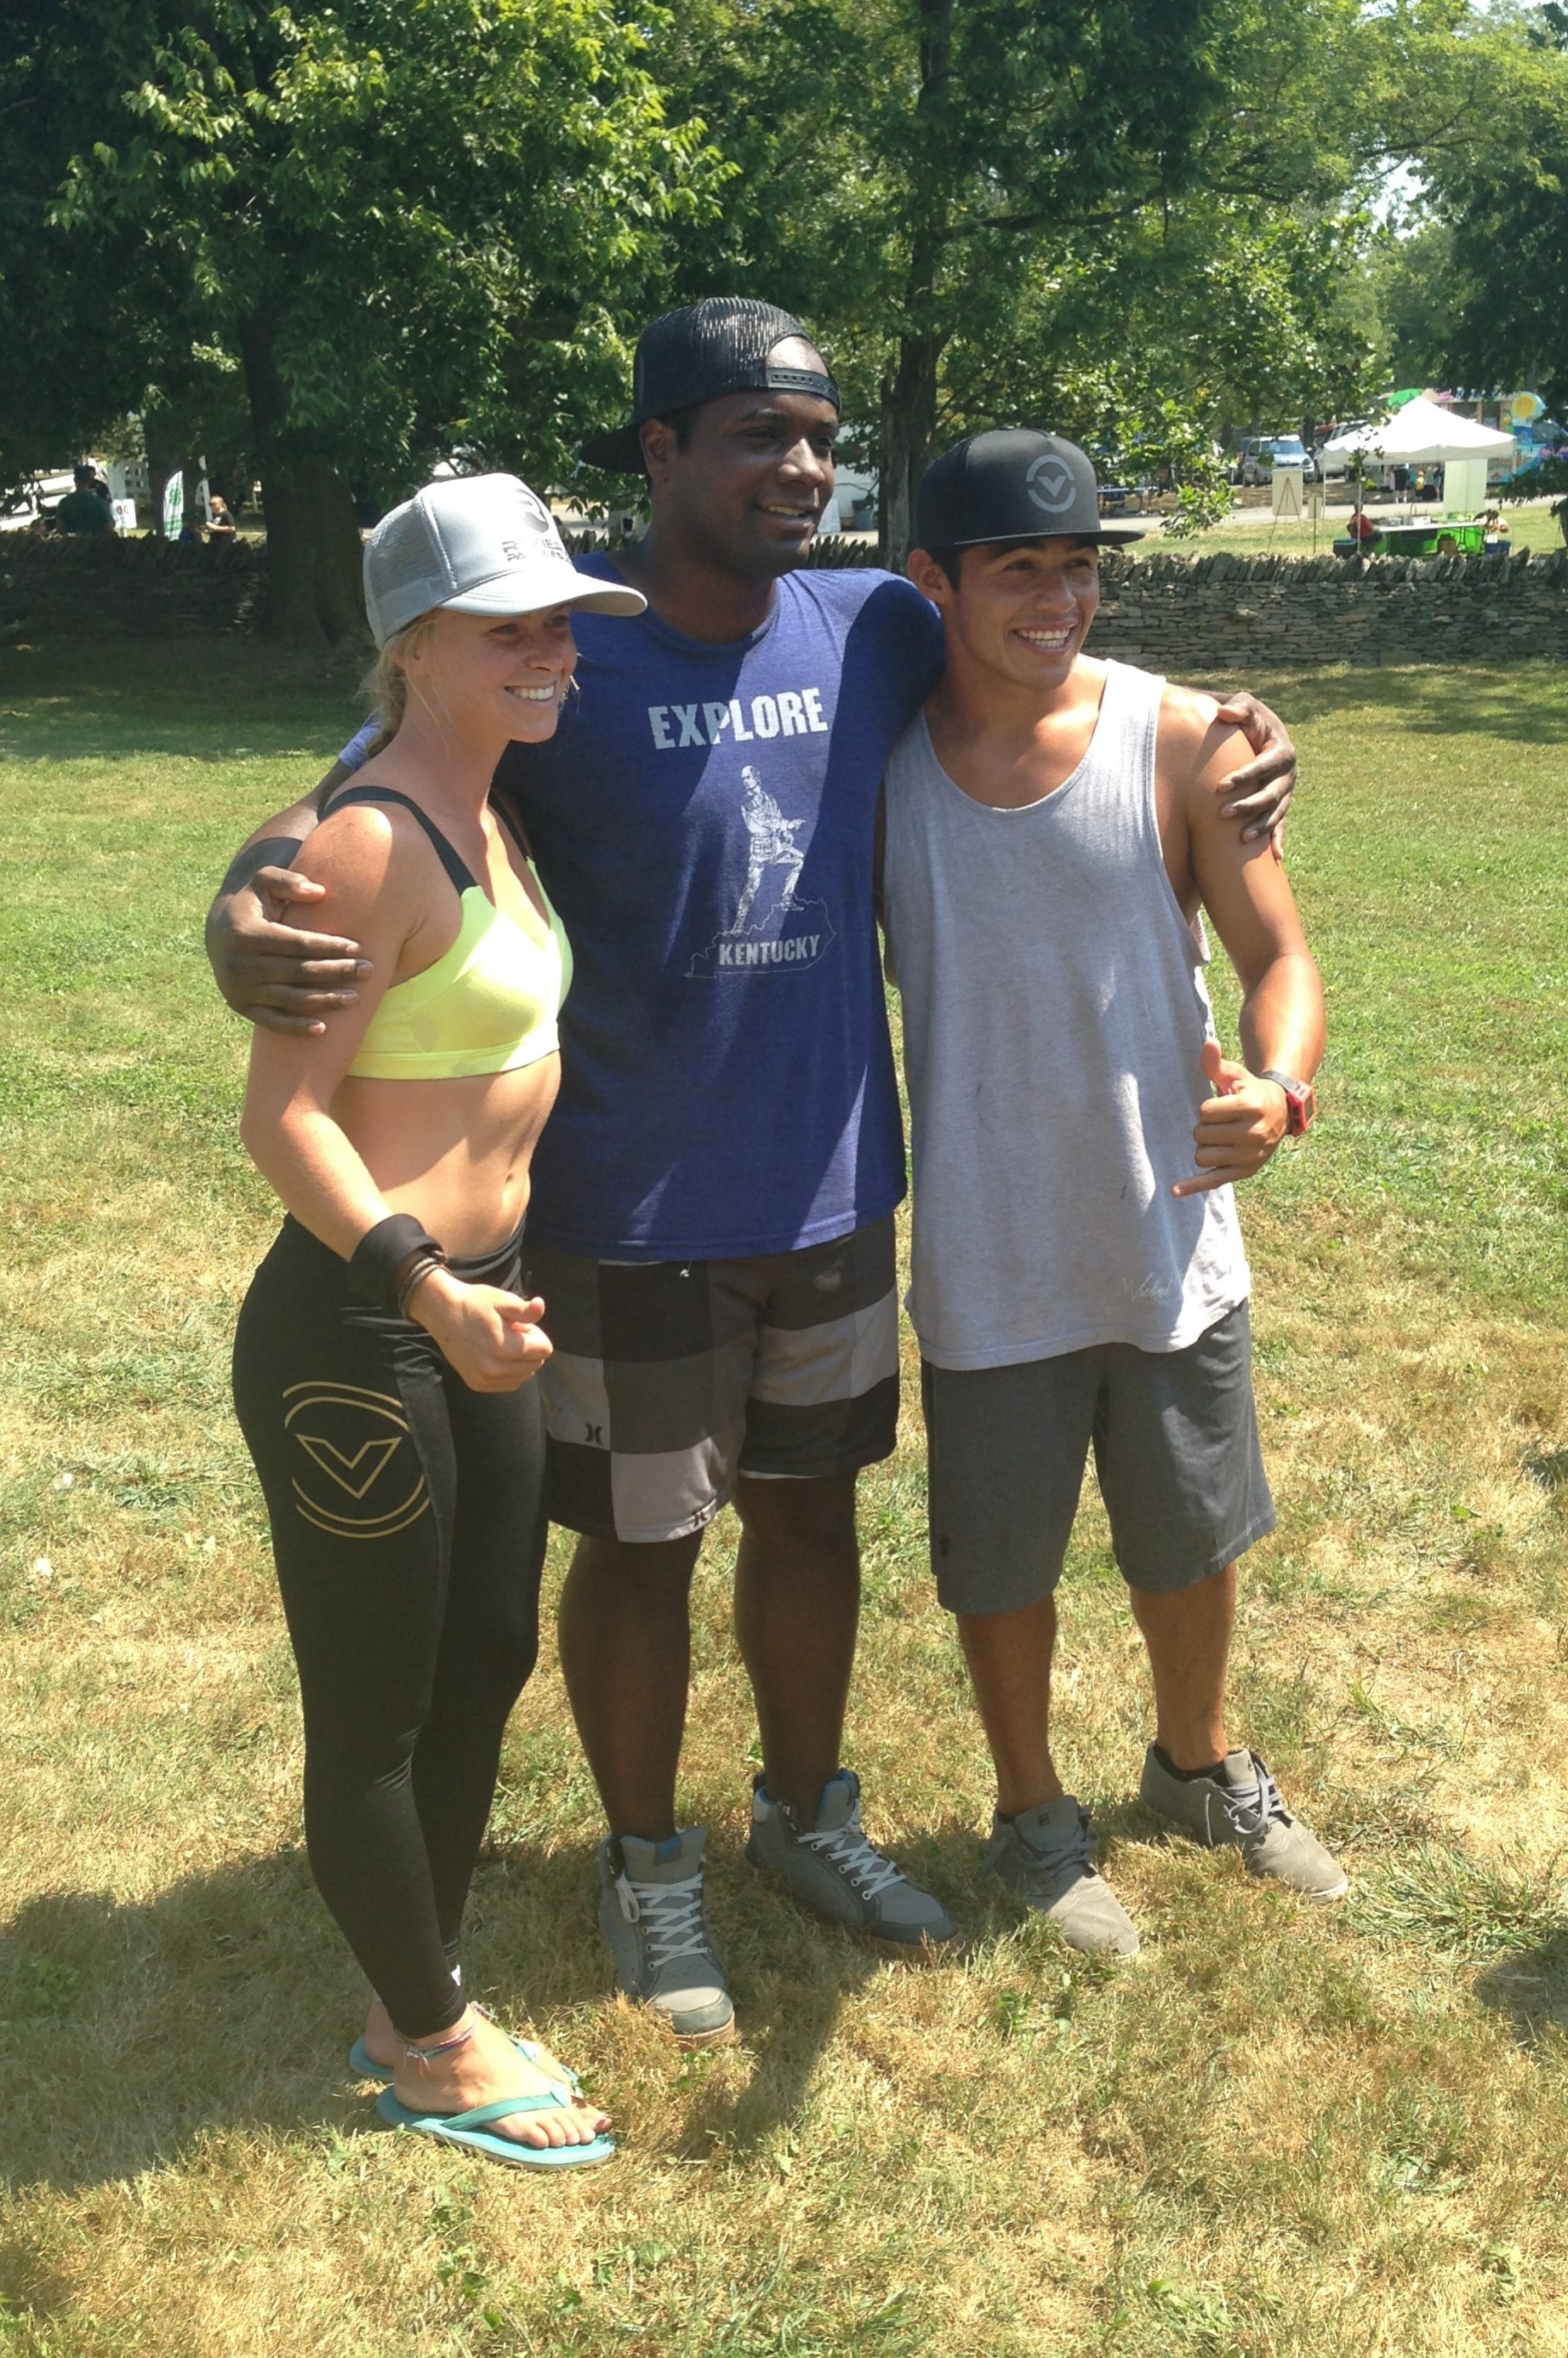 Forsake clad/ posing after the grueling Bluegrass SUP Derby race with Shelby Taylor and Bicho Jimenez, two of the world's top ranked paddlers.